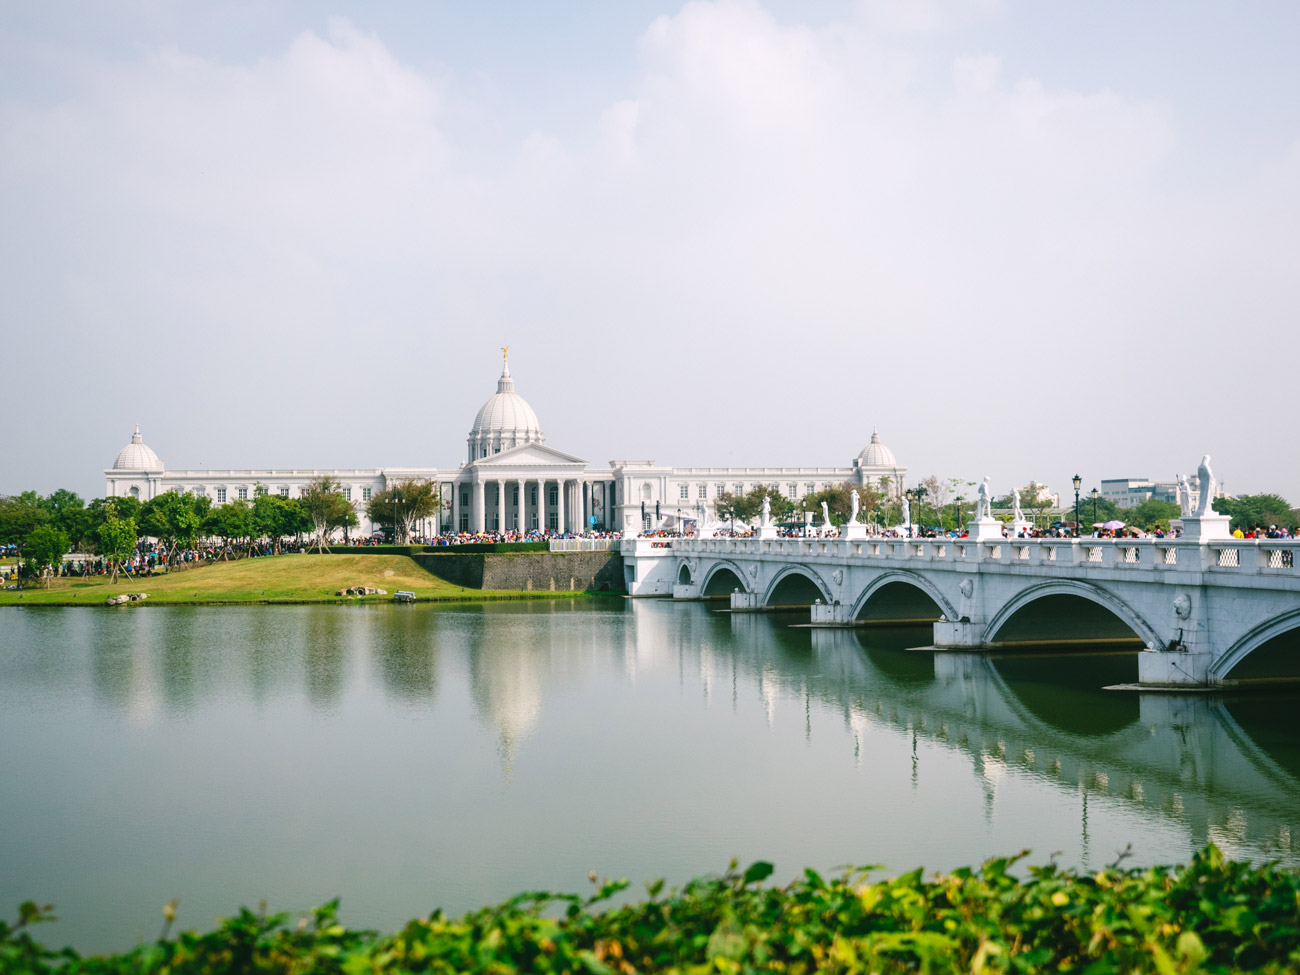 Tainan - Pokemon Go Safari Event - Chimei Museum